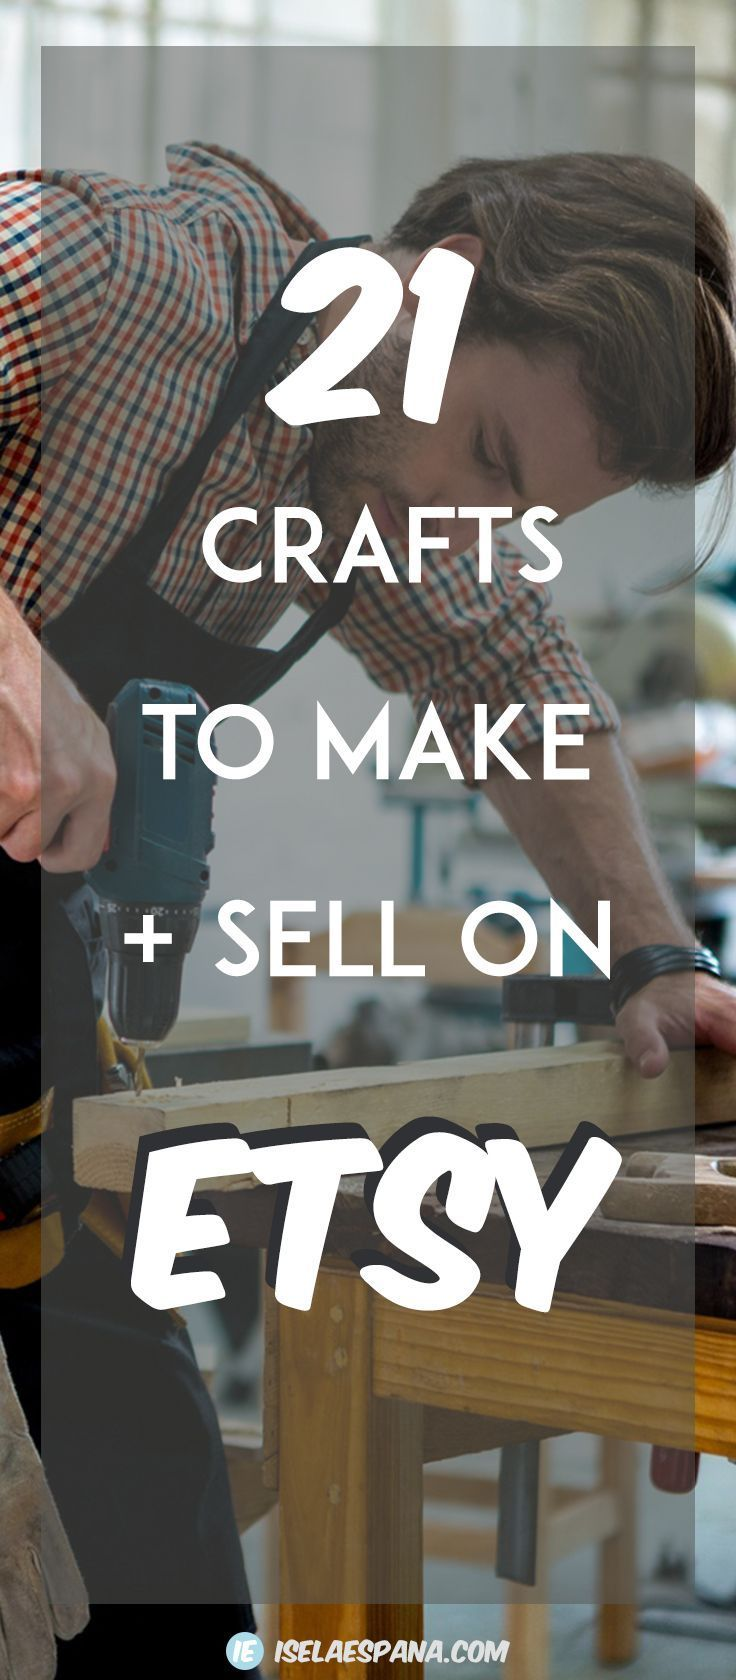 What To Sell On Etsy 21 Crafts To Make And Sell From Home Etsy